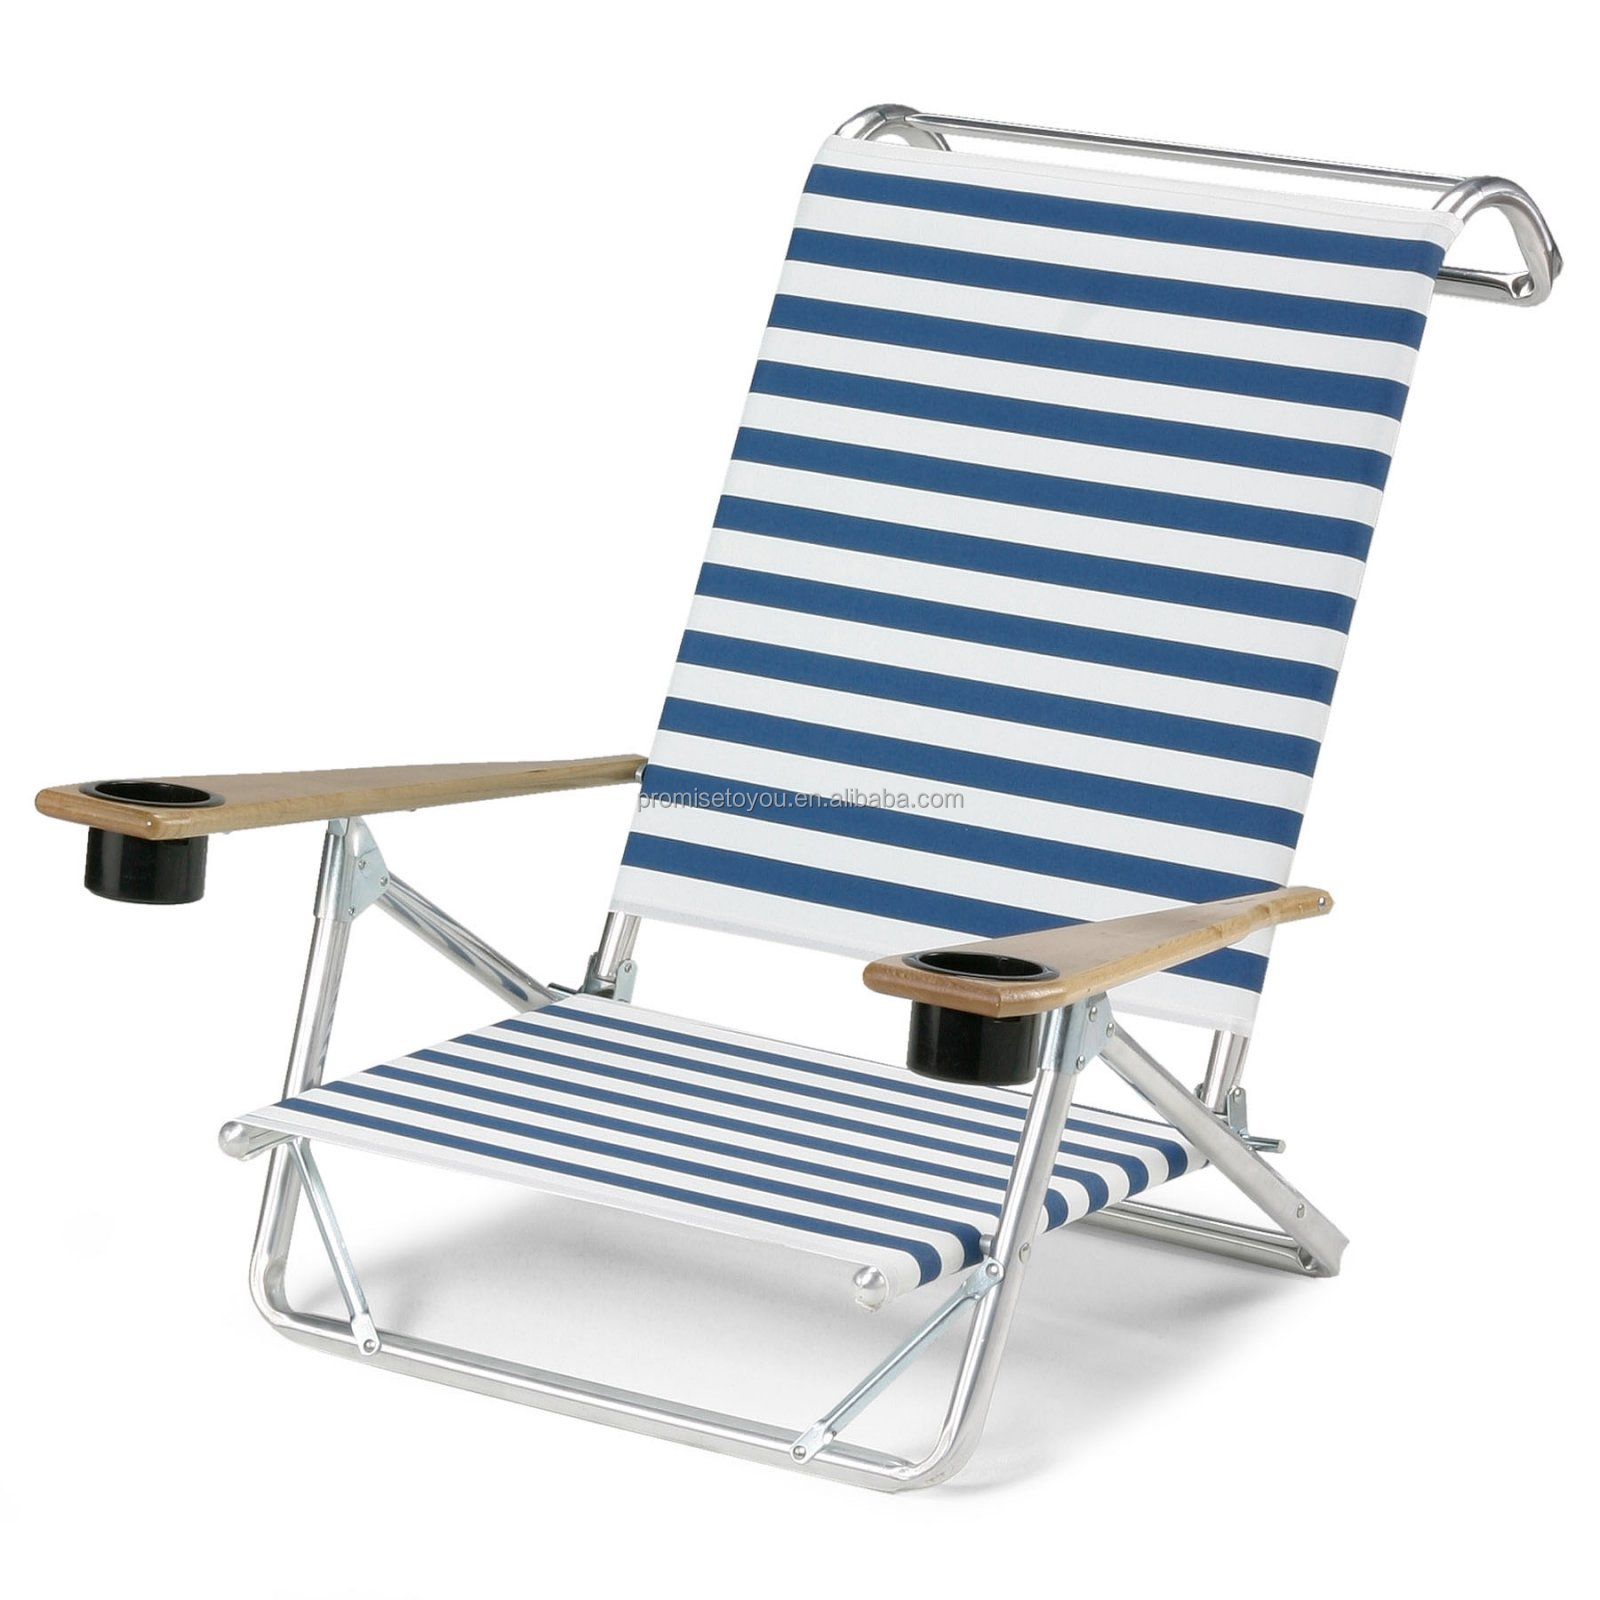 Beach chair 5 position chair with cup holder insulated for Chaise longue de plage pliante